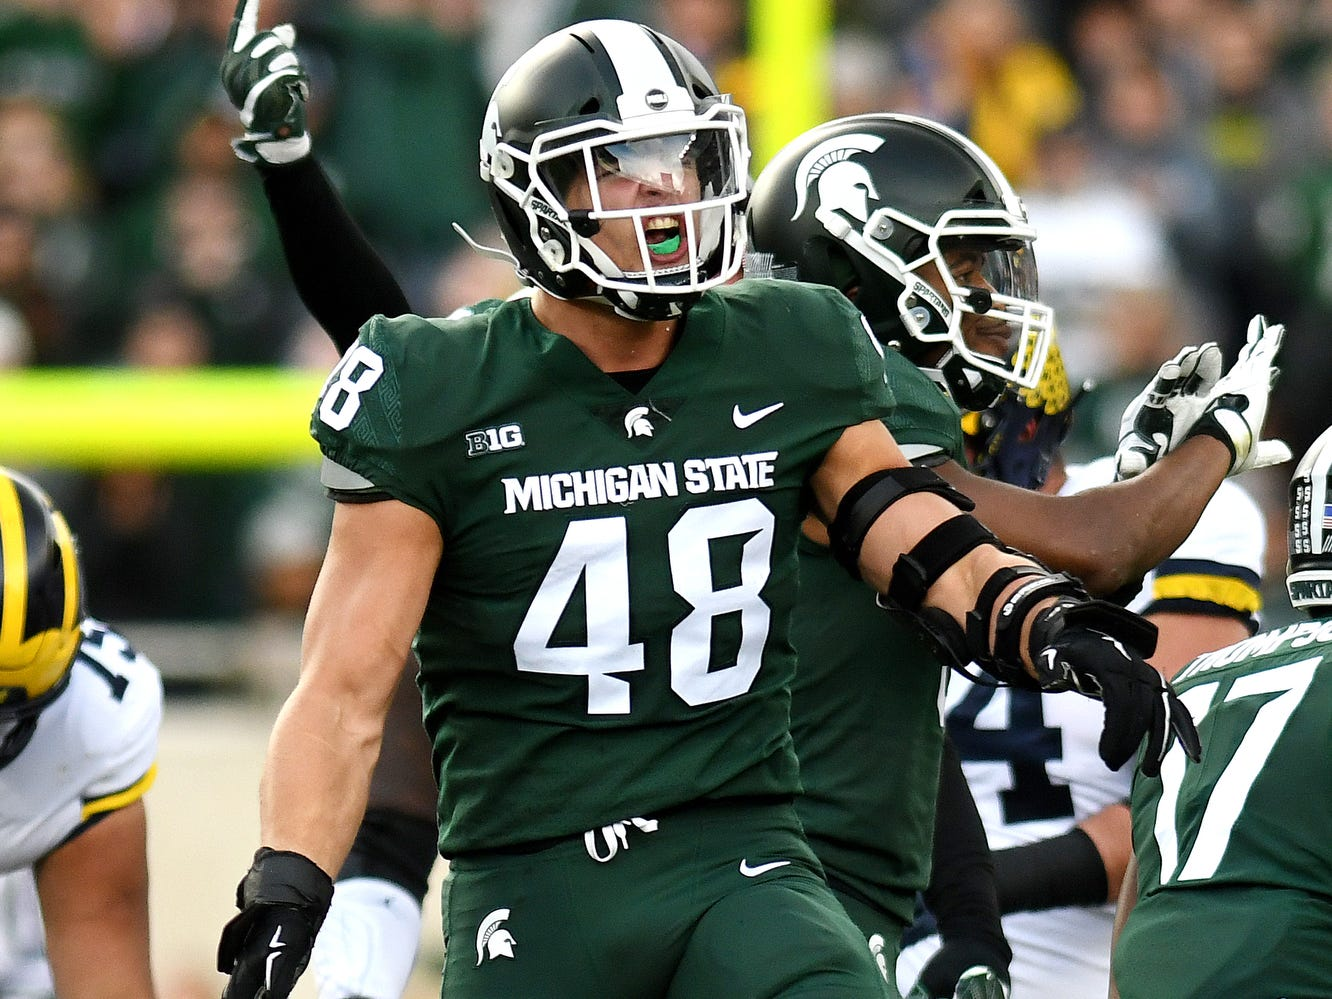 Michigan State's Kenny Willekes celebrates after the Spartans stop Michigan's offense on third down during the first quarter on Saturday, Oct. 20, 2018, in East Lansing.